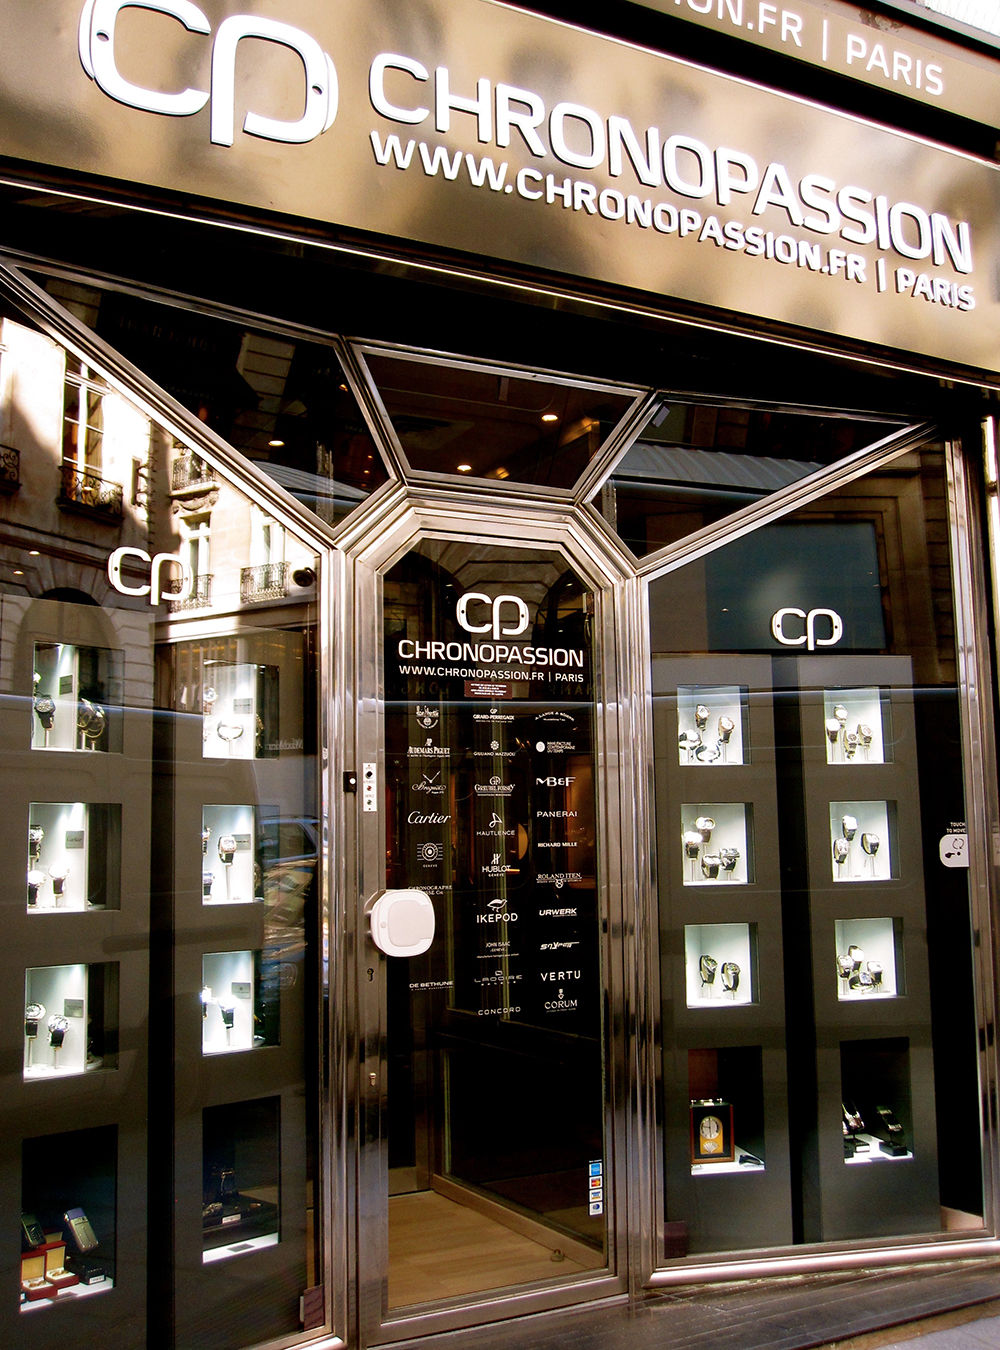 Chronopassion in Paris will turn heads with Carousel display cabinets.